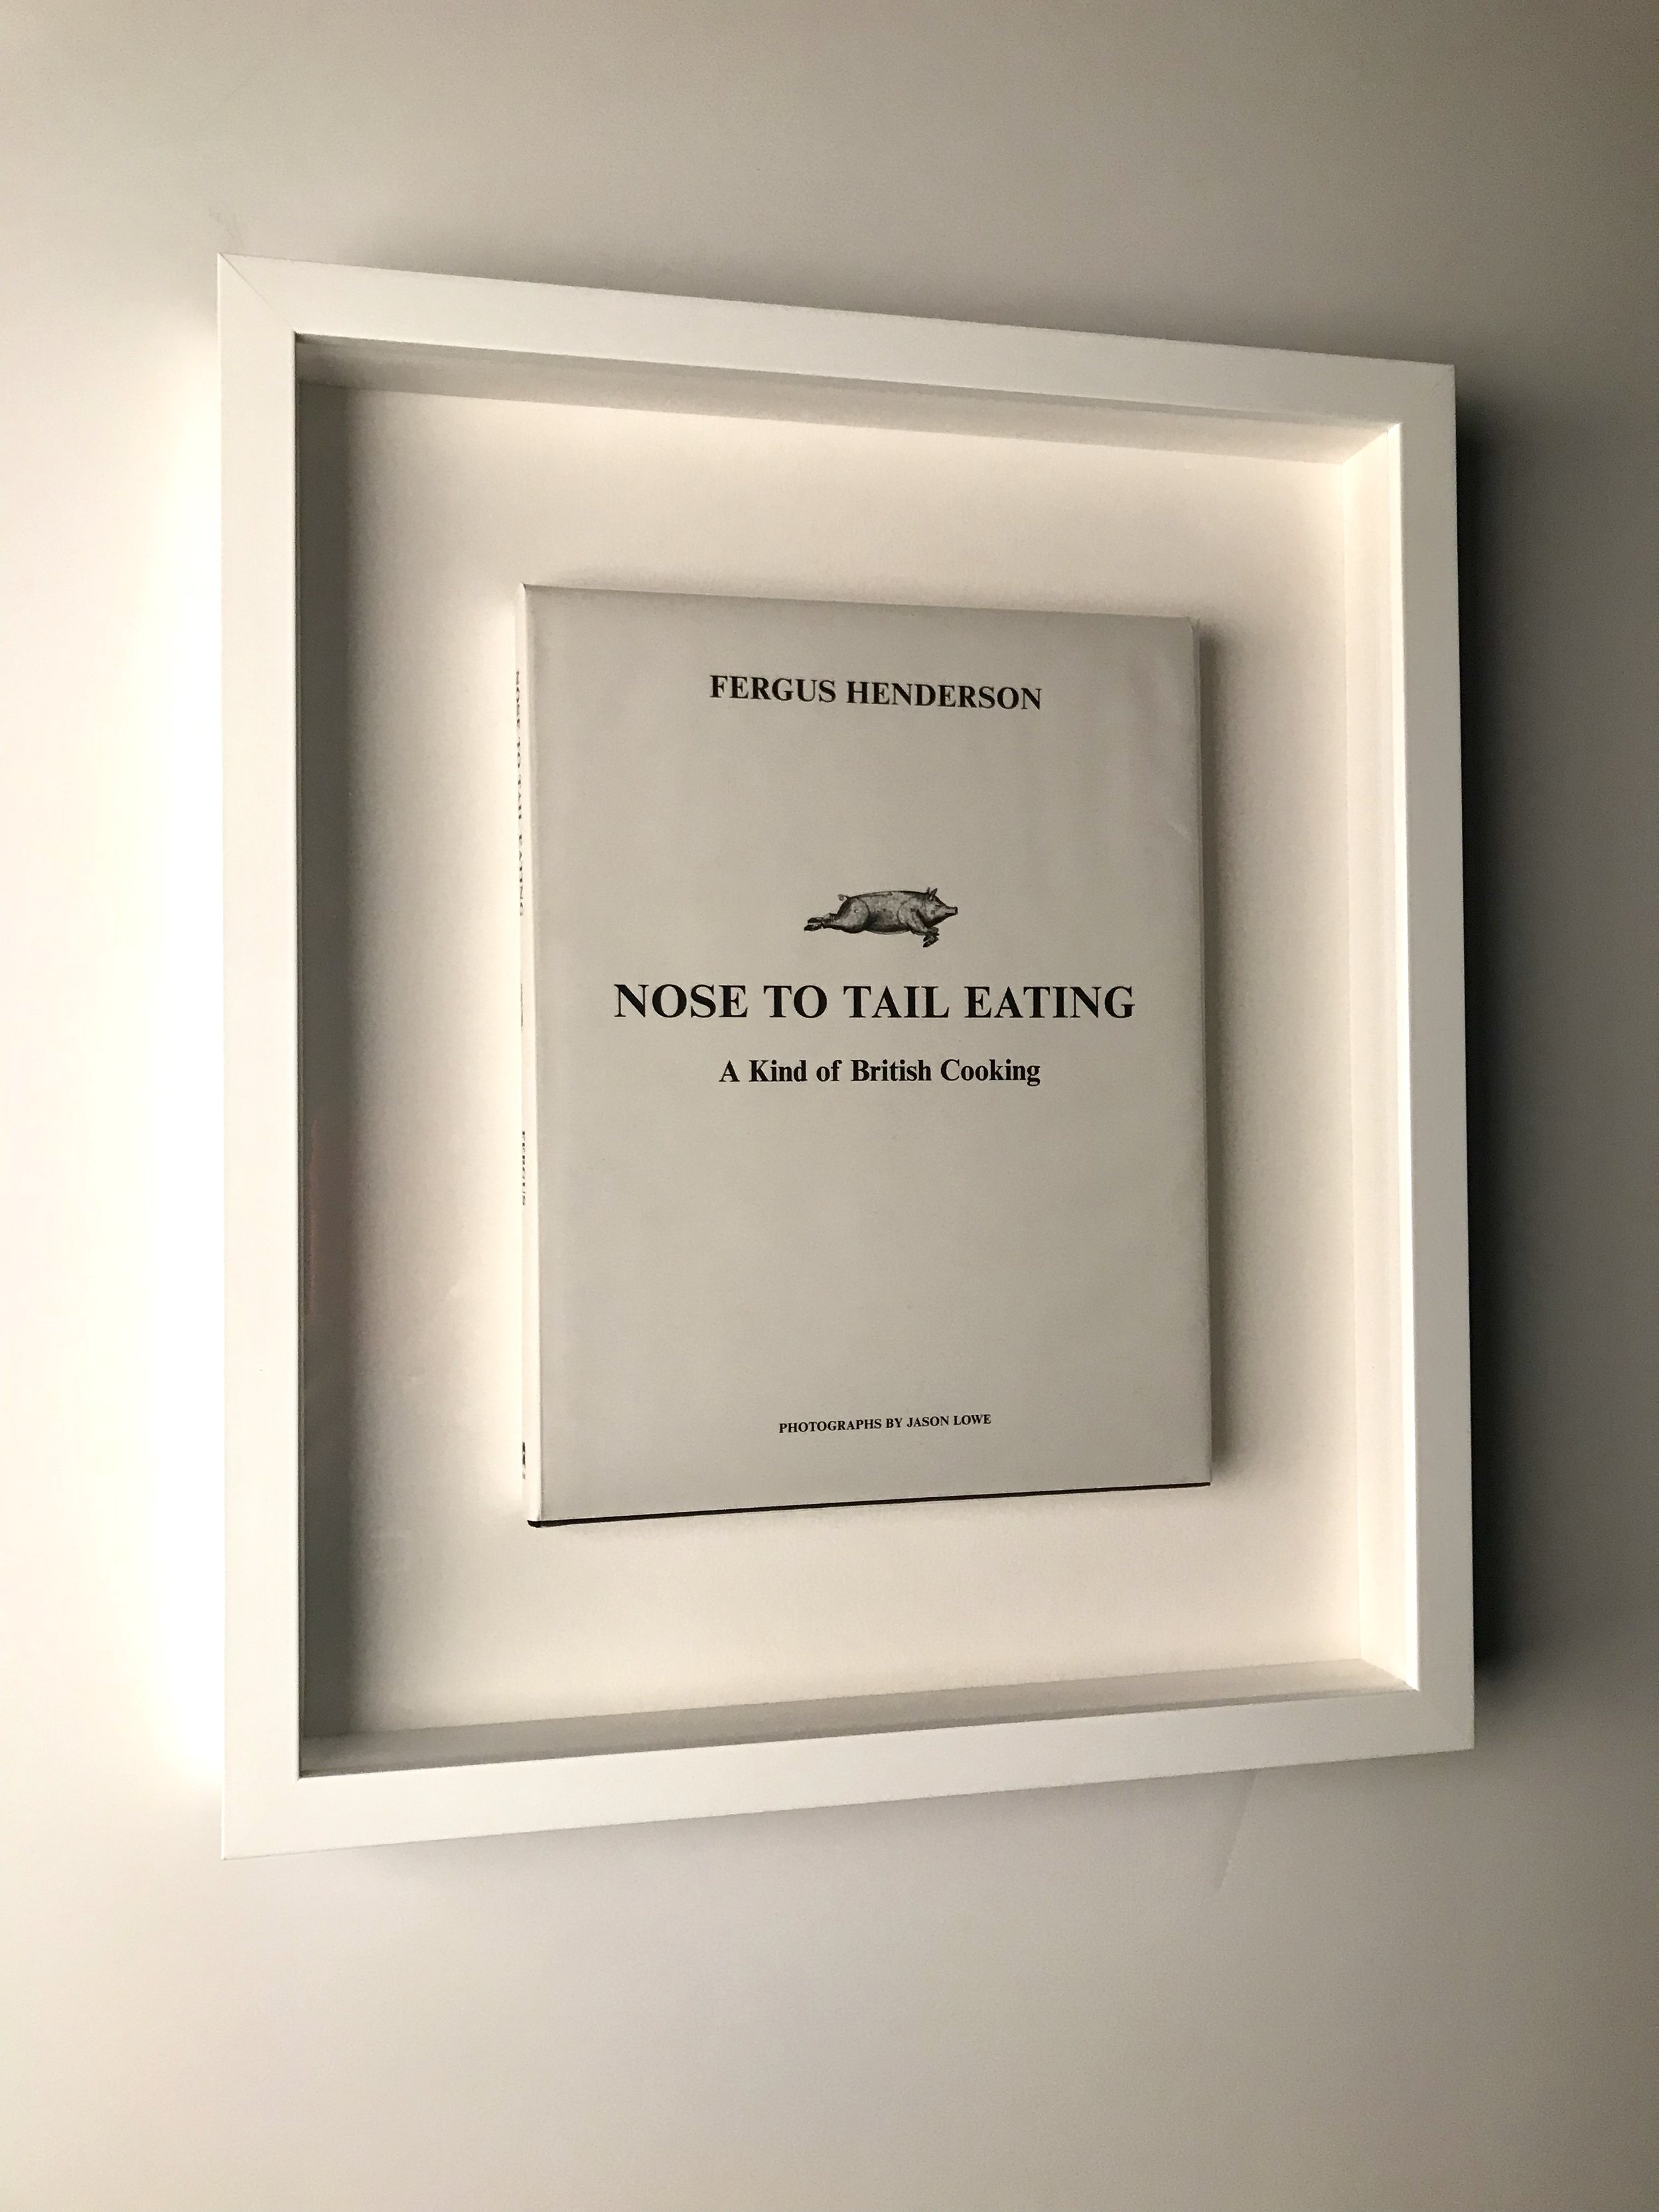 First edition book float mounted and shadowboxed.